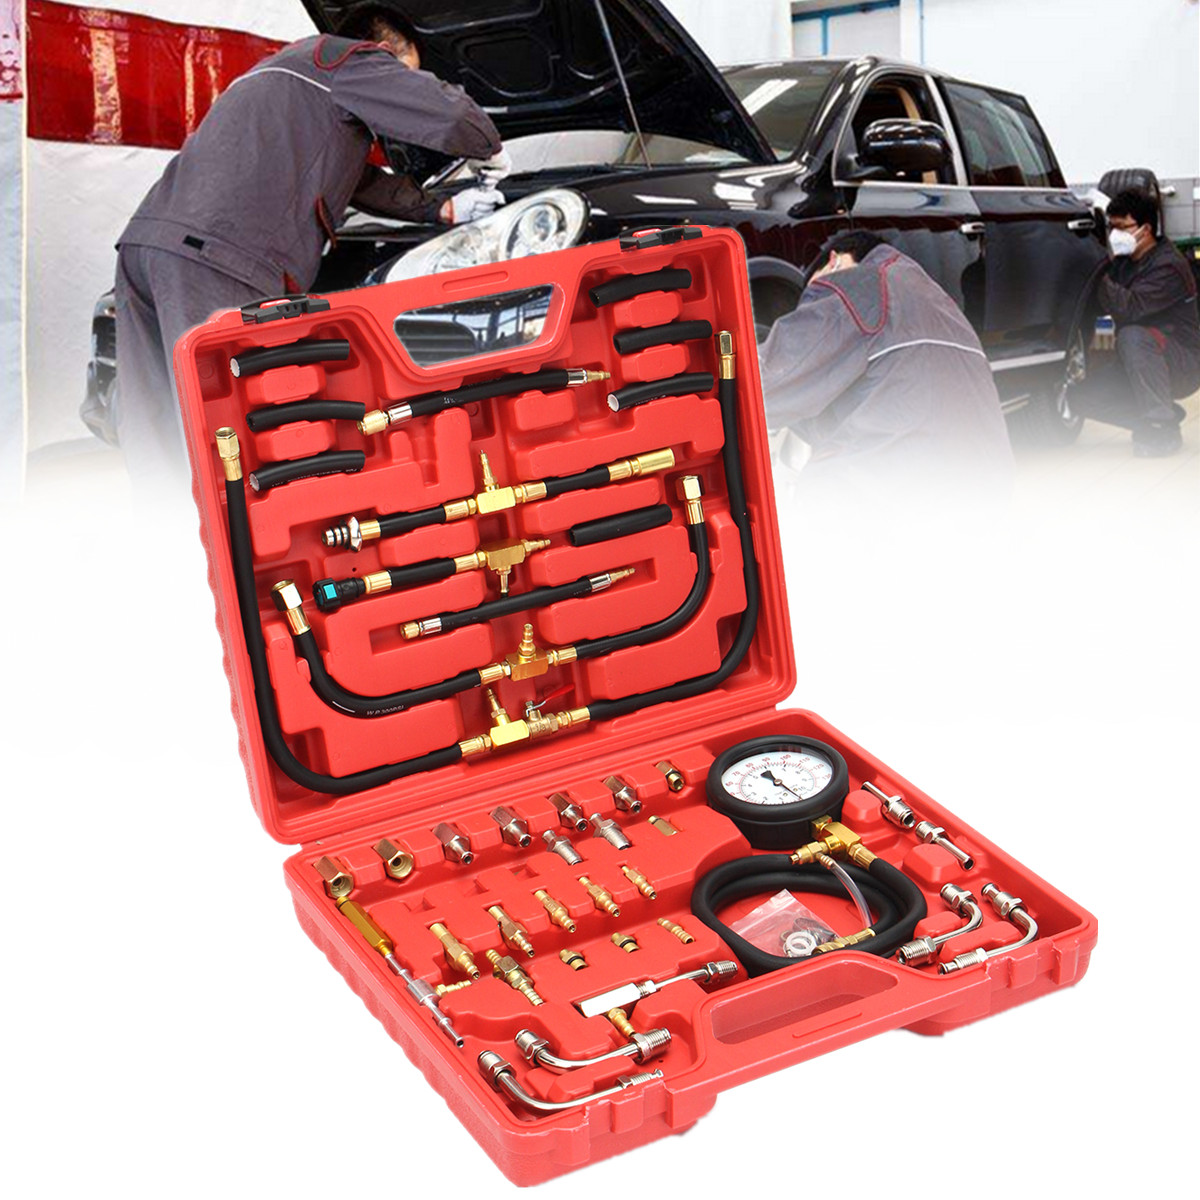 Injector Tester Test Pressure Gauge Kit Case 140psi Fuel Injection Pump Pressure Universal 32 Adapters 3-way-valve Vehicle car style tu 443 fuel injection pressure tester injector pump pressure gauge gasoline test set 0 140psi for cars